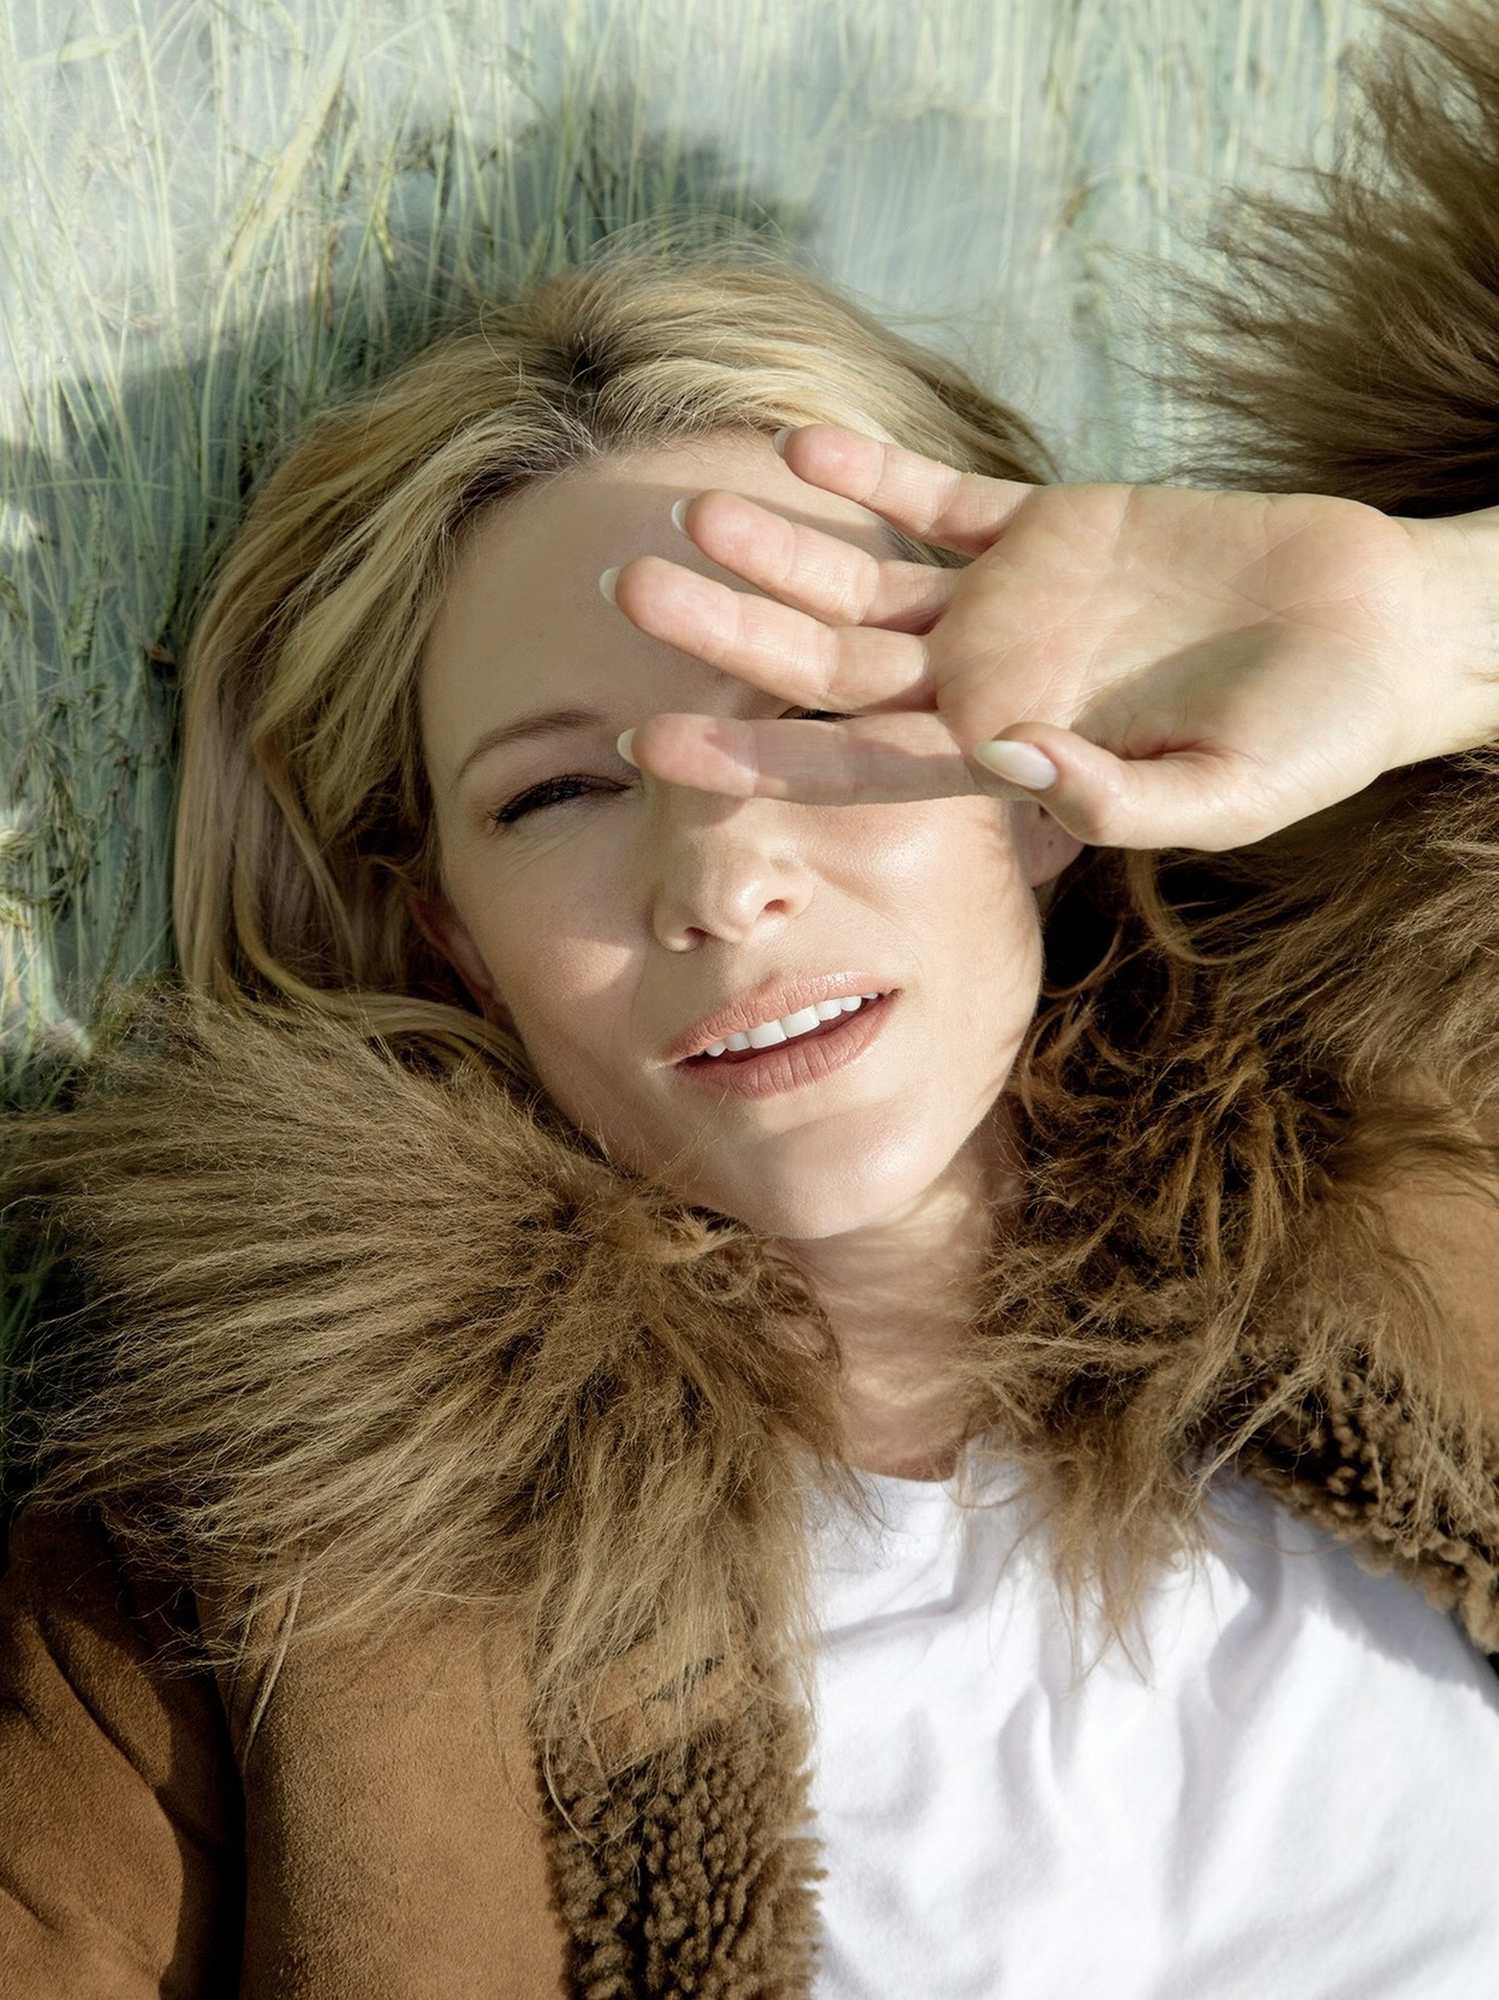 Cate-Blanchett-All-Female-Issue-of-W-Magazine-September8fe298965971794.jpg